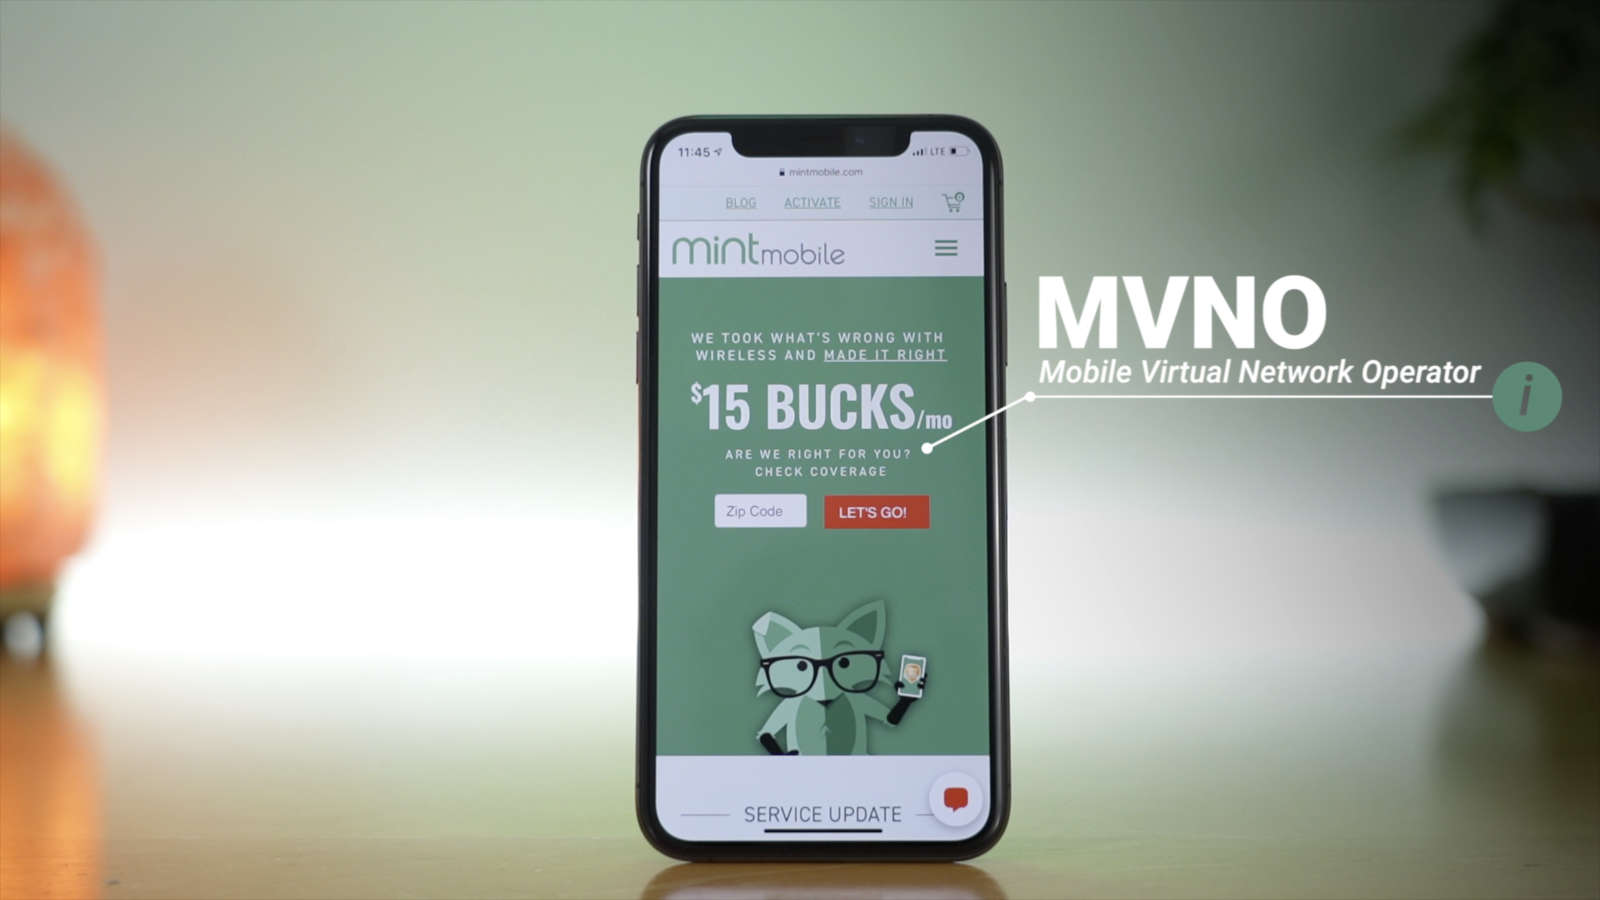 mint mobile is an MVNO that uses T-Mobile for coverage